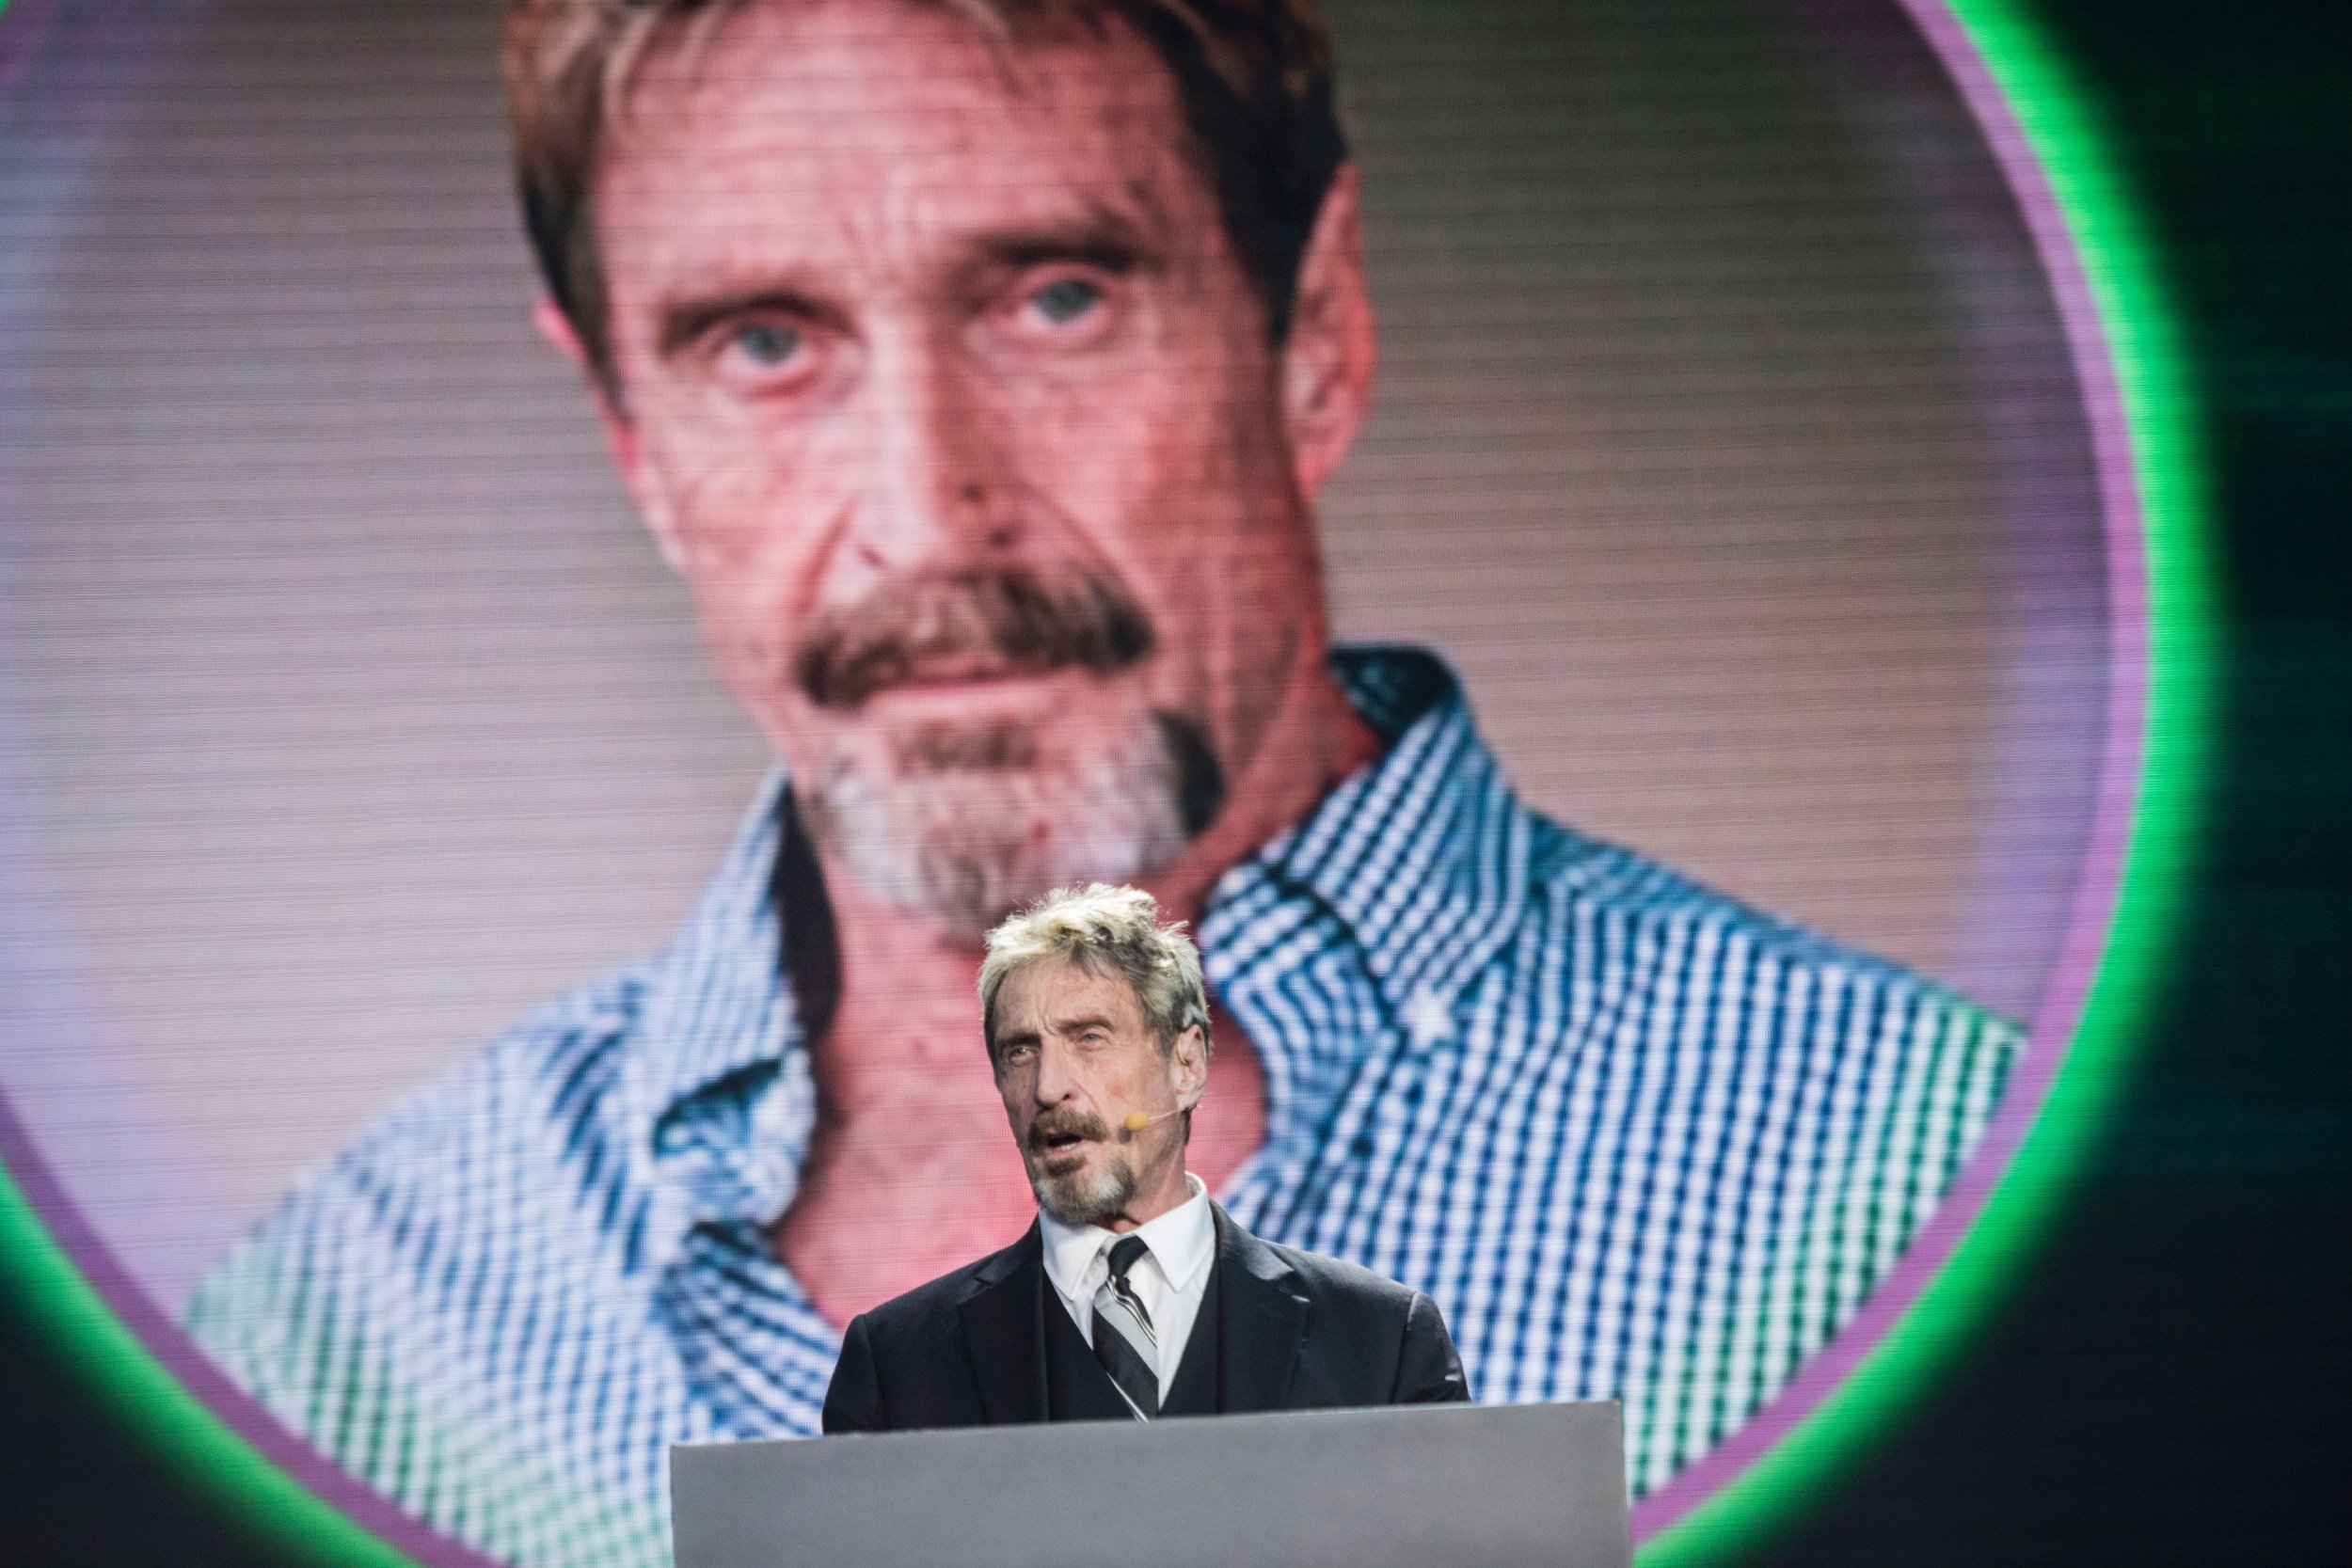 John McAfee, founder of the eponymous anti-virus company, speaks during the China Internet Security Conference in Beijing on August 16, 2016. / AFP / FRED DUFOUR (Photo credit should read FRED DUFOUR/AFP/Getty Images)